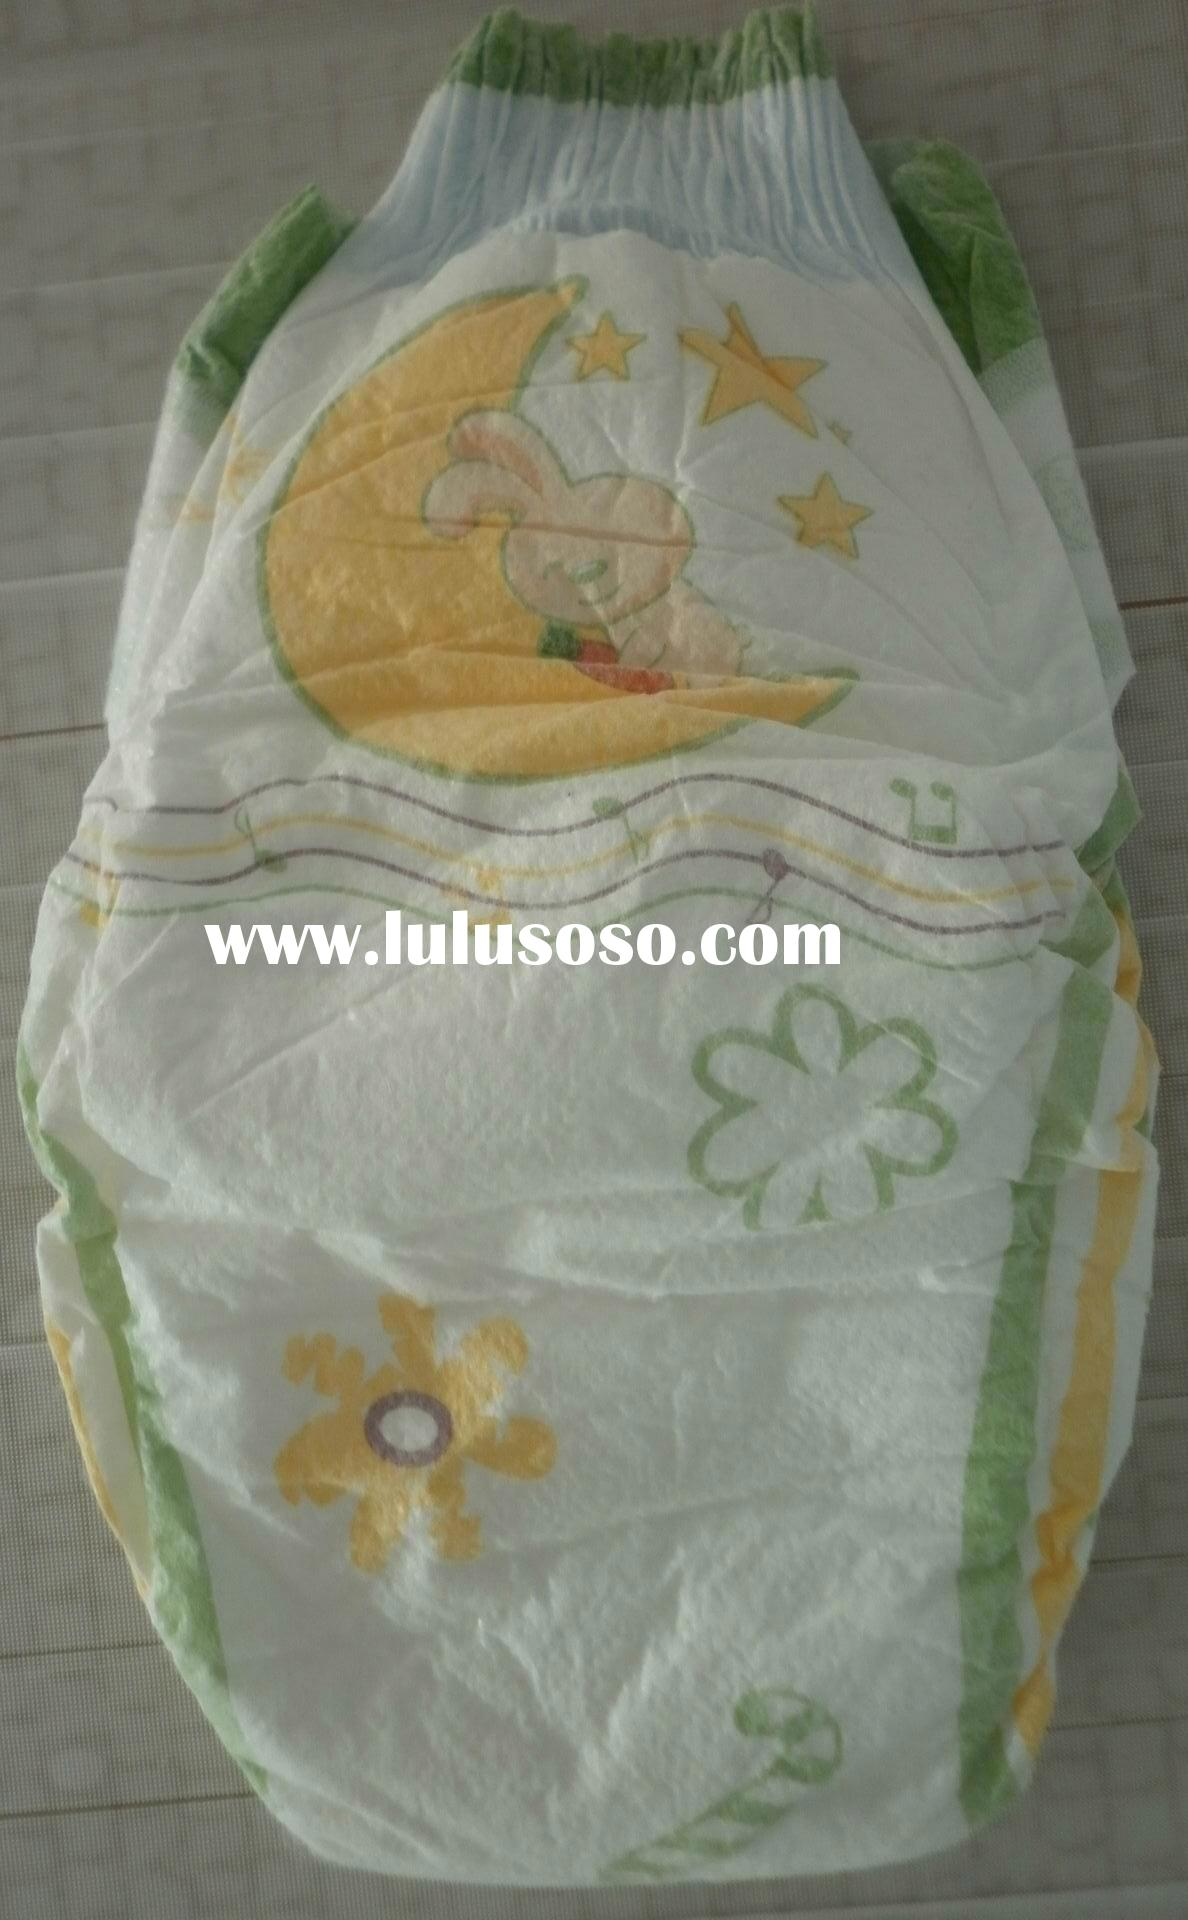 disposable diaper bag Posted on July 12, 2012 by Nude Celebrity Fakes